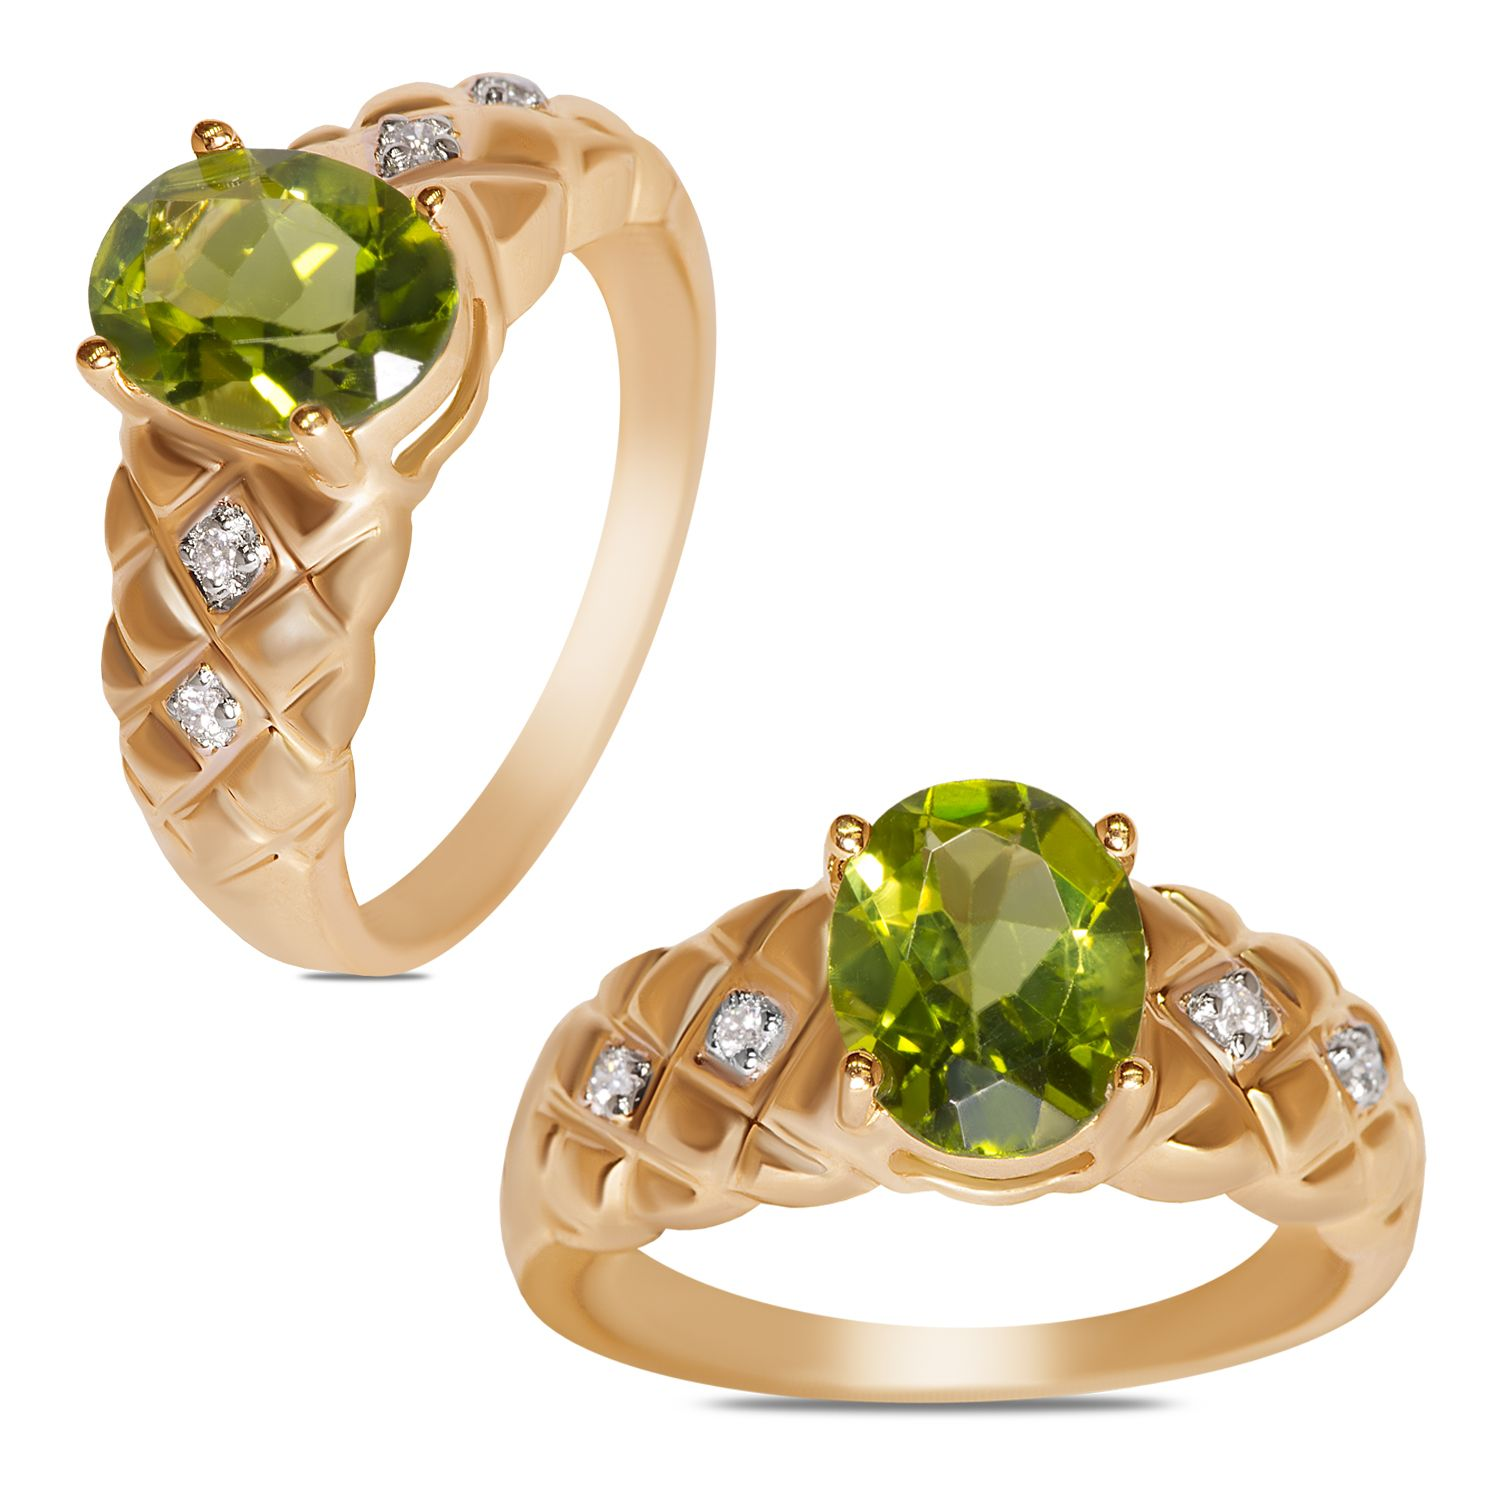 Ebay NissoniJewelry presents 04CT Diamond w Peridot Ring 10k Y